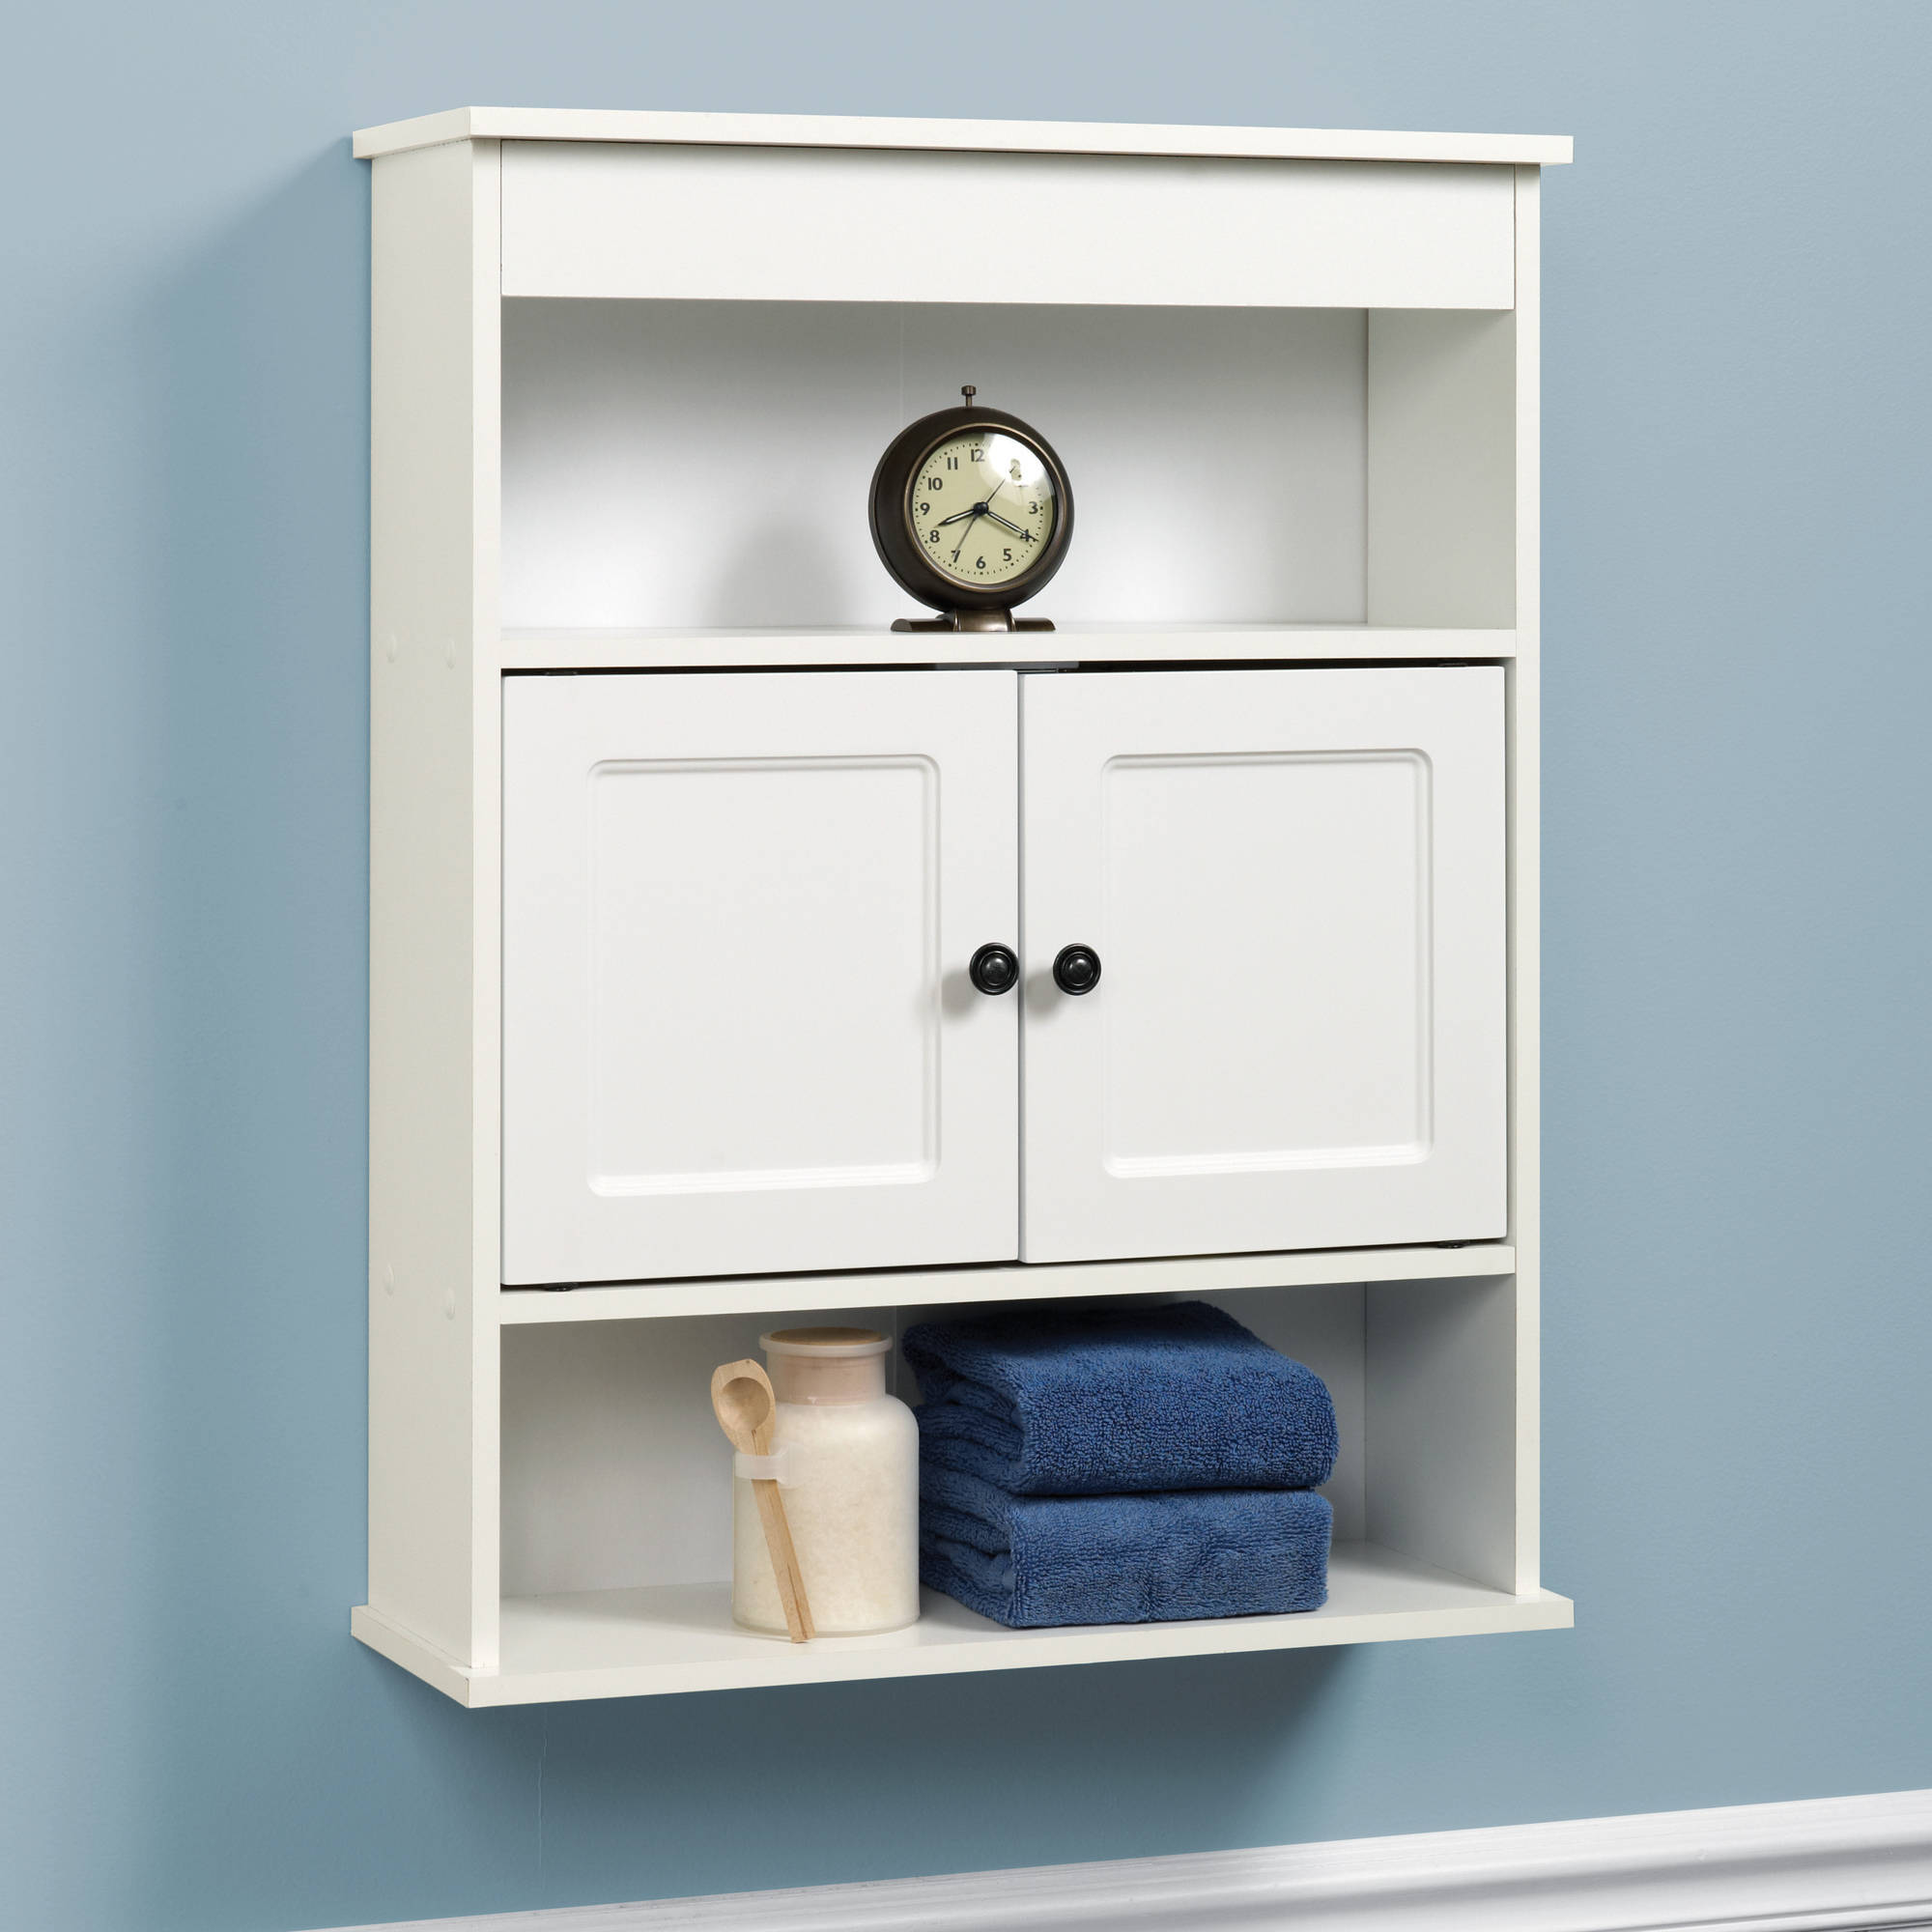 Bathroom wall cabinet white - Bathroom Wall Cabinet White 24